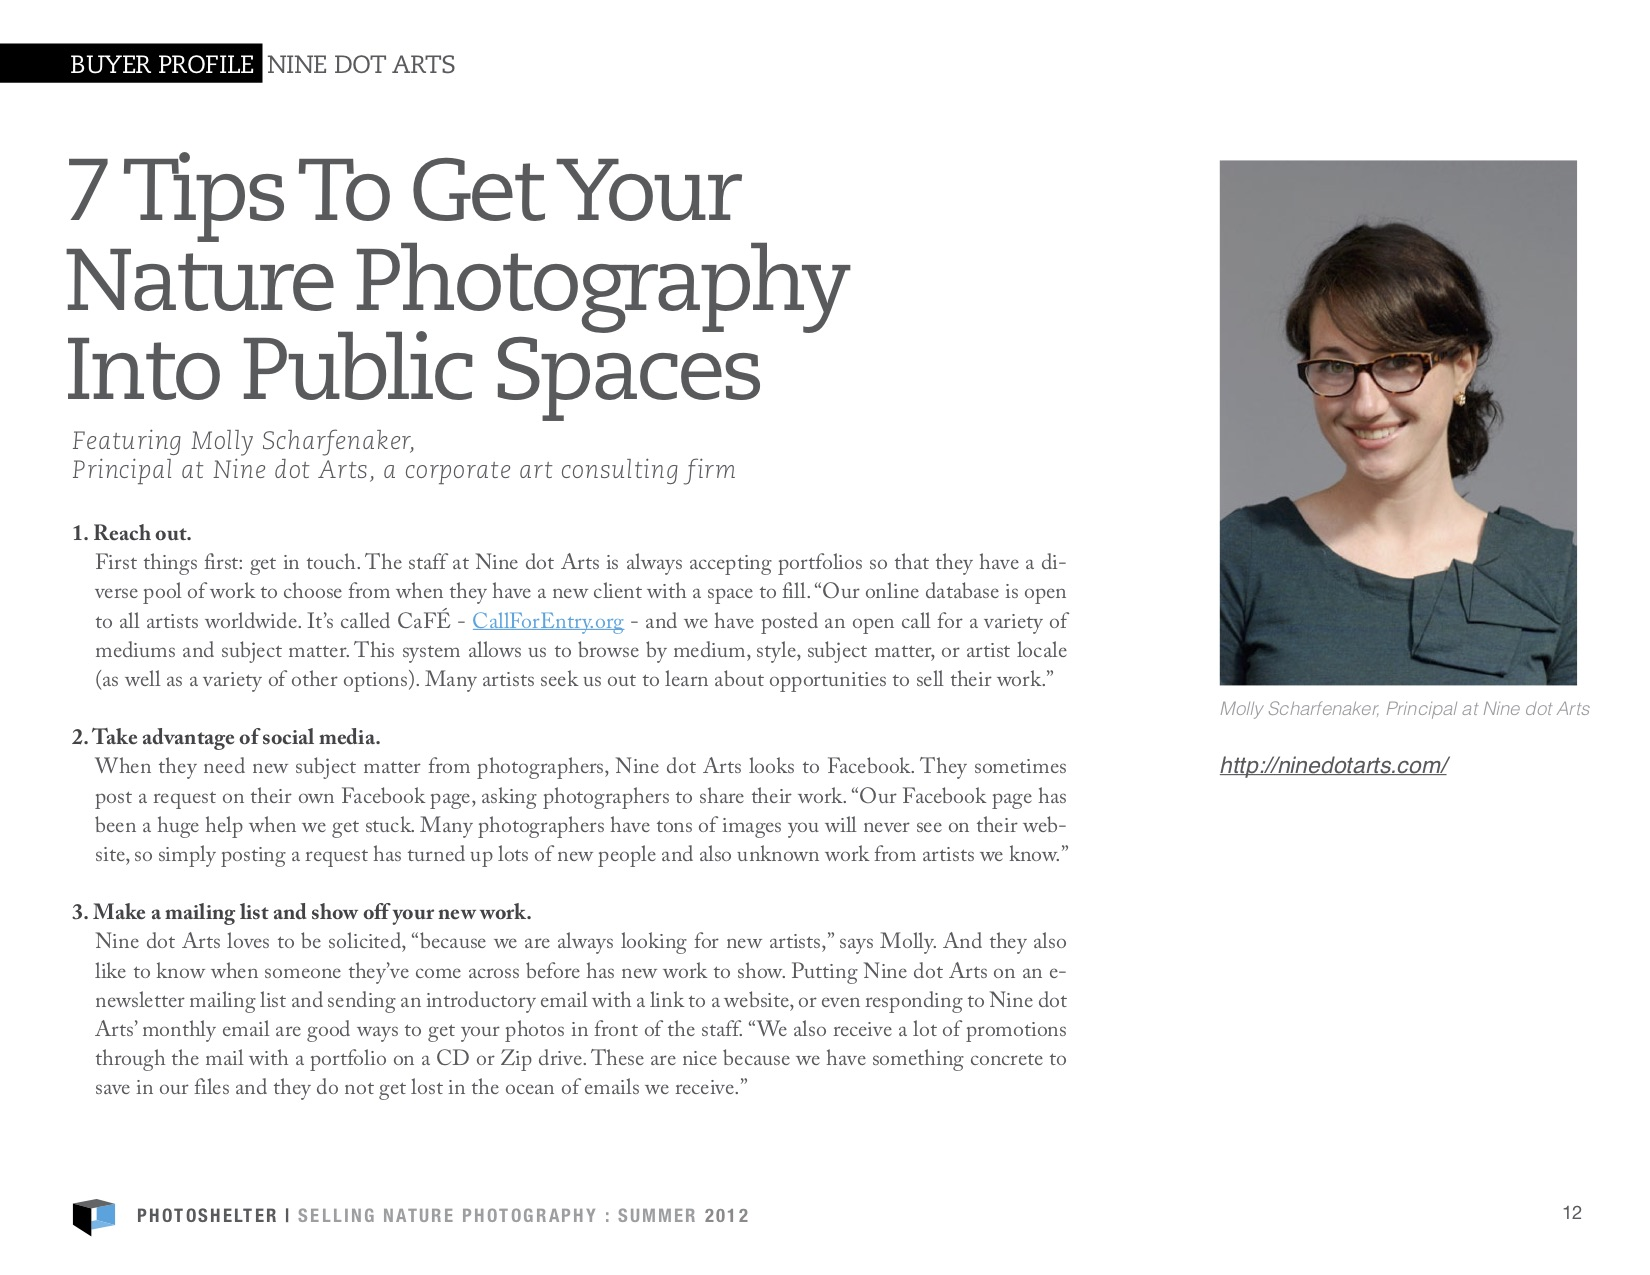 An article covering 7 tips to get your nature photography into public spaces. To the right of the article is a photo of Molly Scharfenaker.